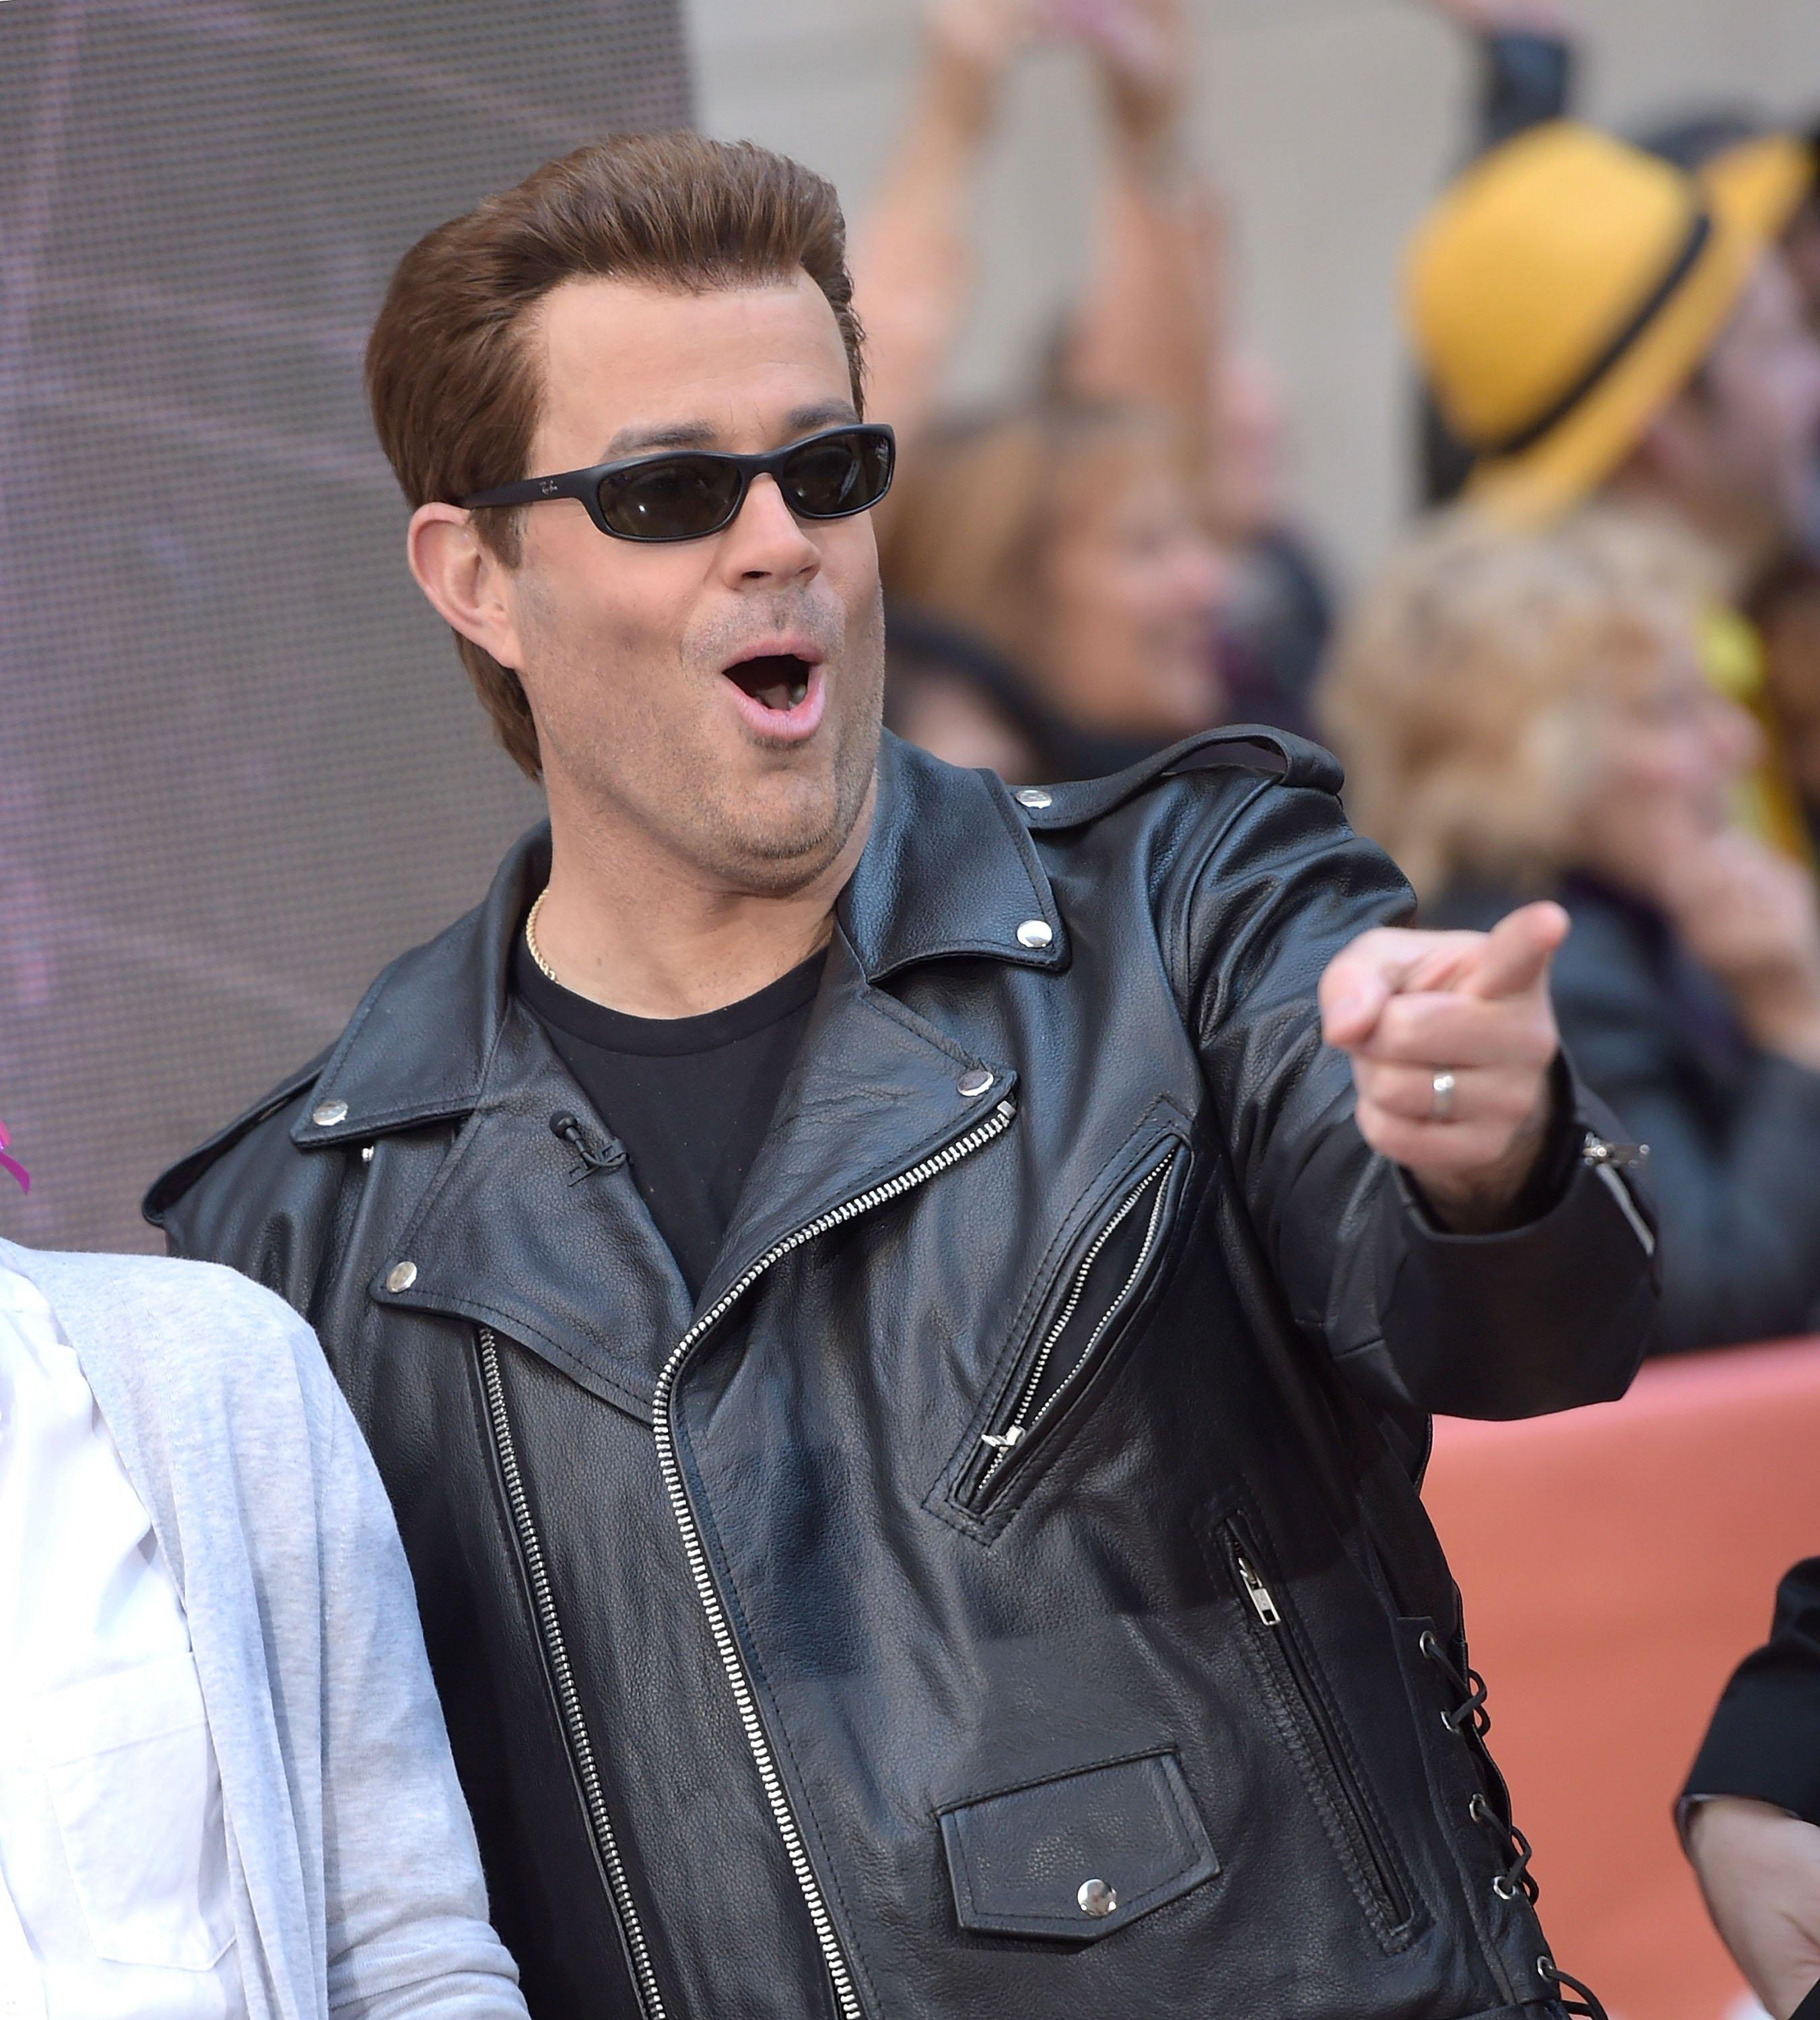 Carson Daly Dressed Up As Himself In The Trl Glory Days